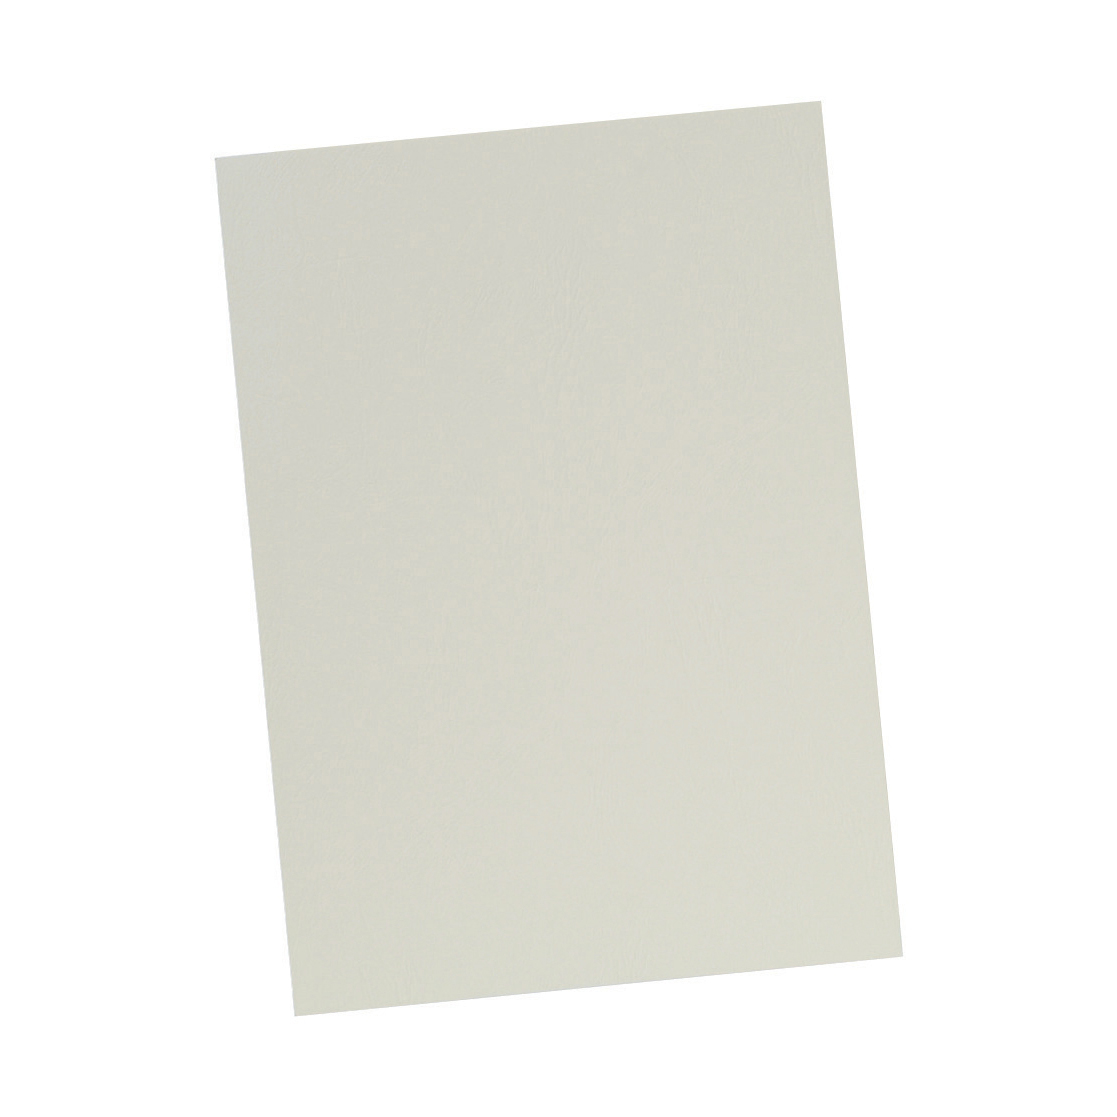 5 Star Office Binding Covers 240gsm Leathergrain A4 Ivory Pack 100